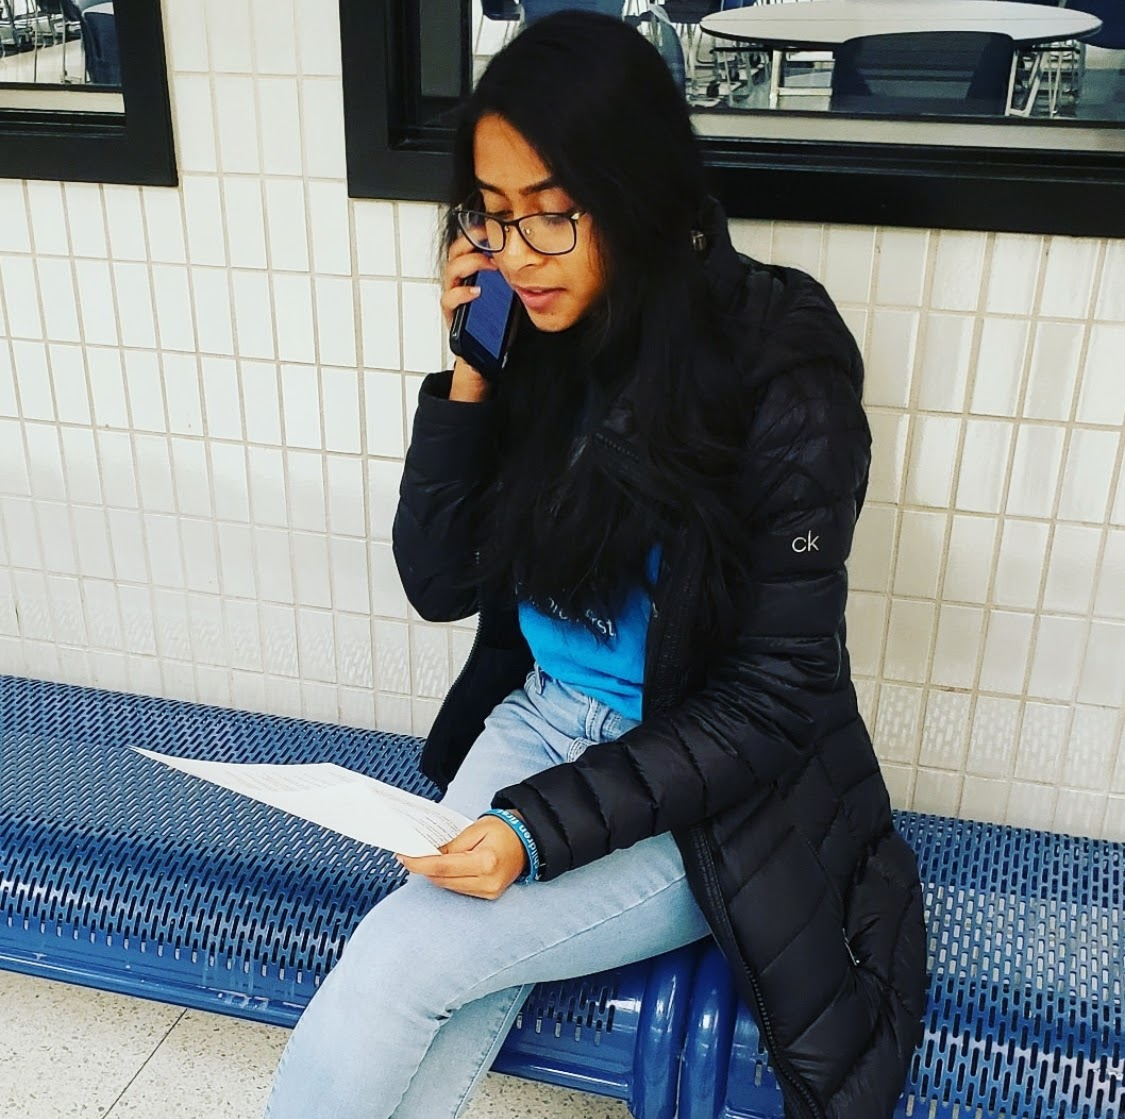 Viha Bynagari, Carmel UNICEF co-president and senior, is on the phone talking to a congressional staffer from Indiana to advocate for the end of human trafficking. On Dec. 3, Carmel UNICEF hosted its first phone-a-thon of the school year as club members called the offices of Rep. Susan Brooks, Sen. Mike Braun and Sen. Todd Young.